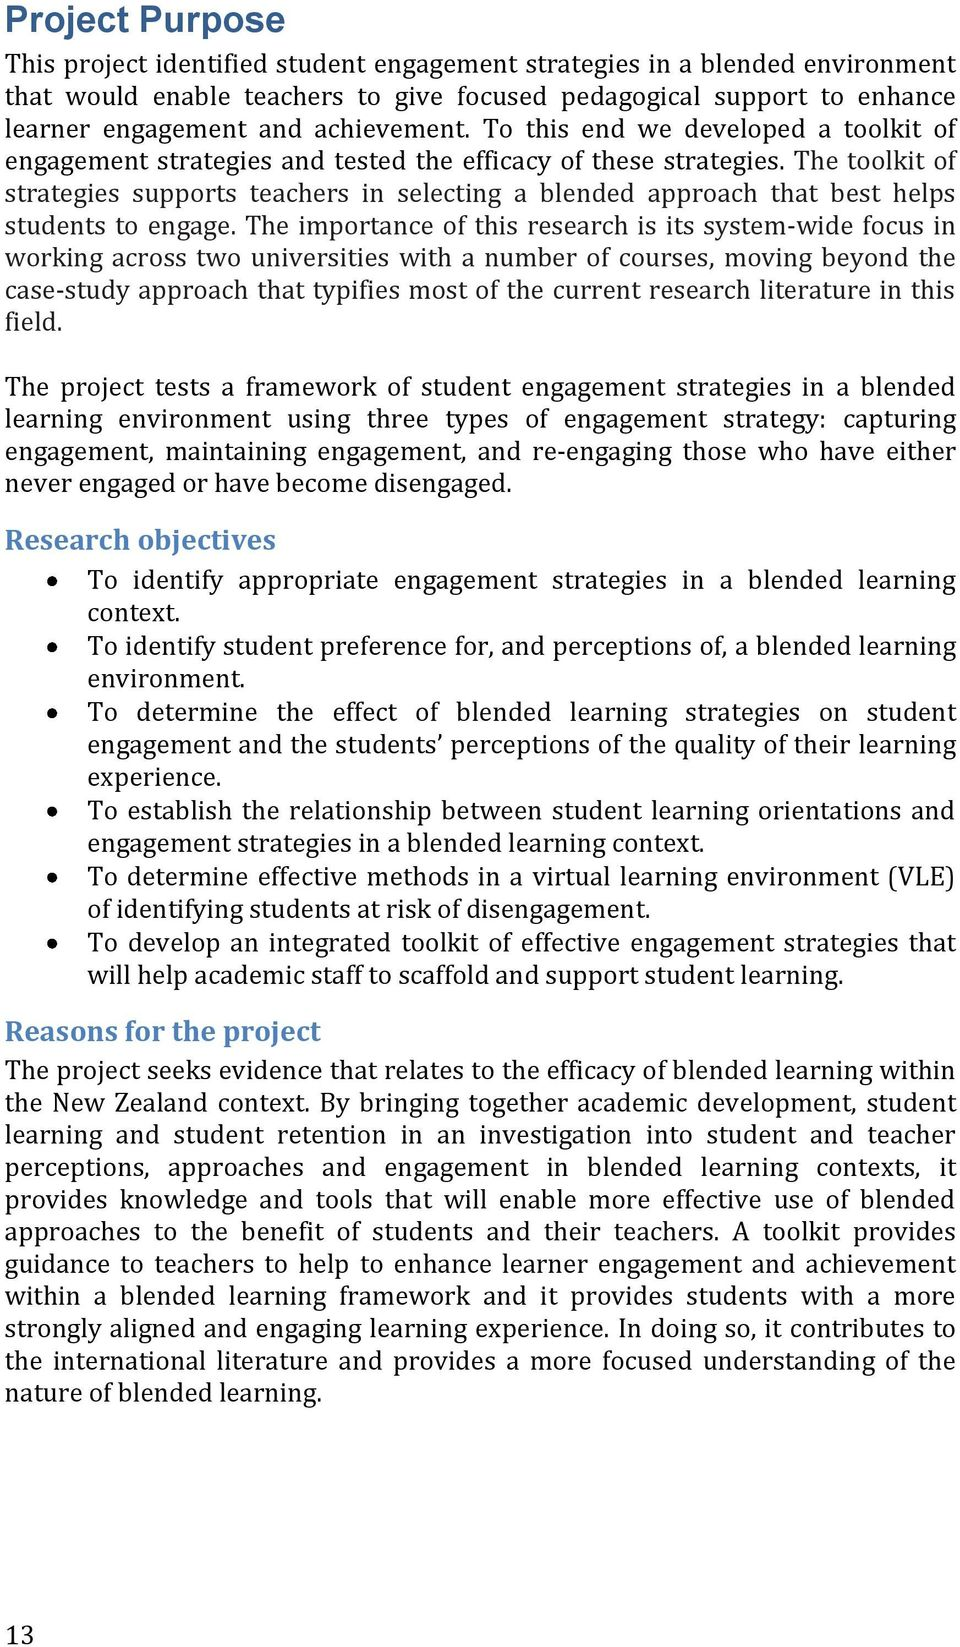 The toolkit of strategies supports teachers in selecting a blended approach that best helps students to engage.